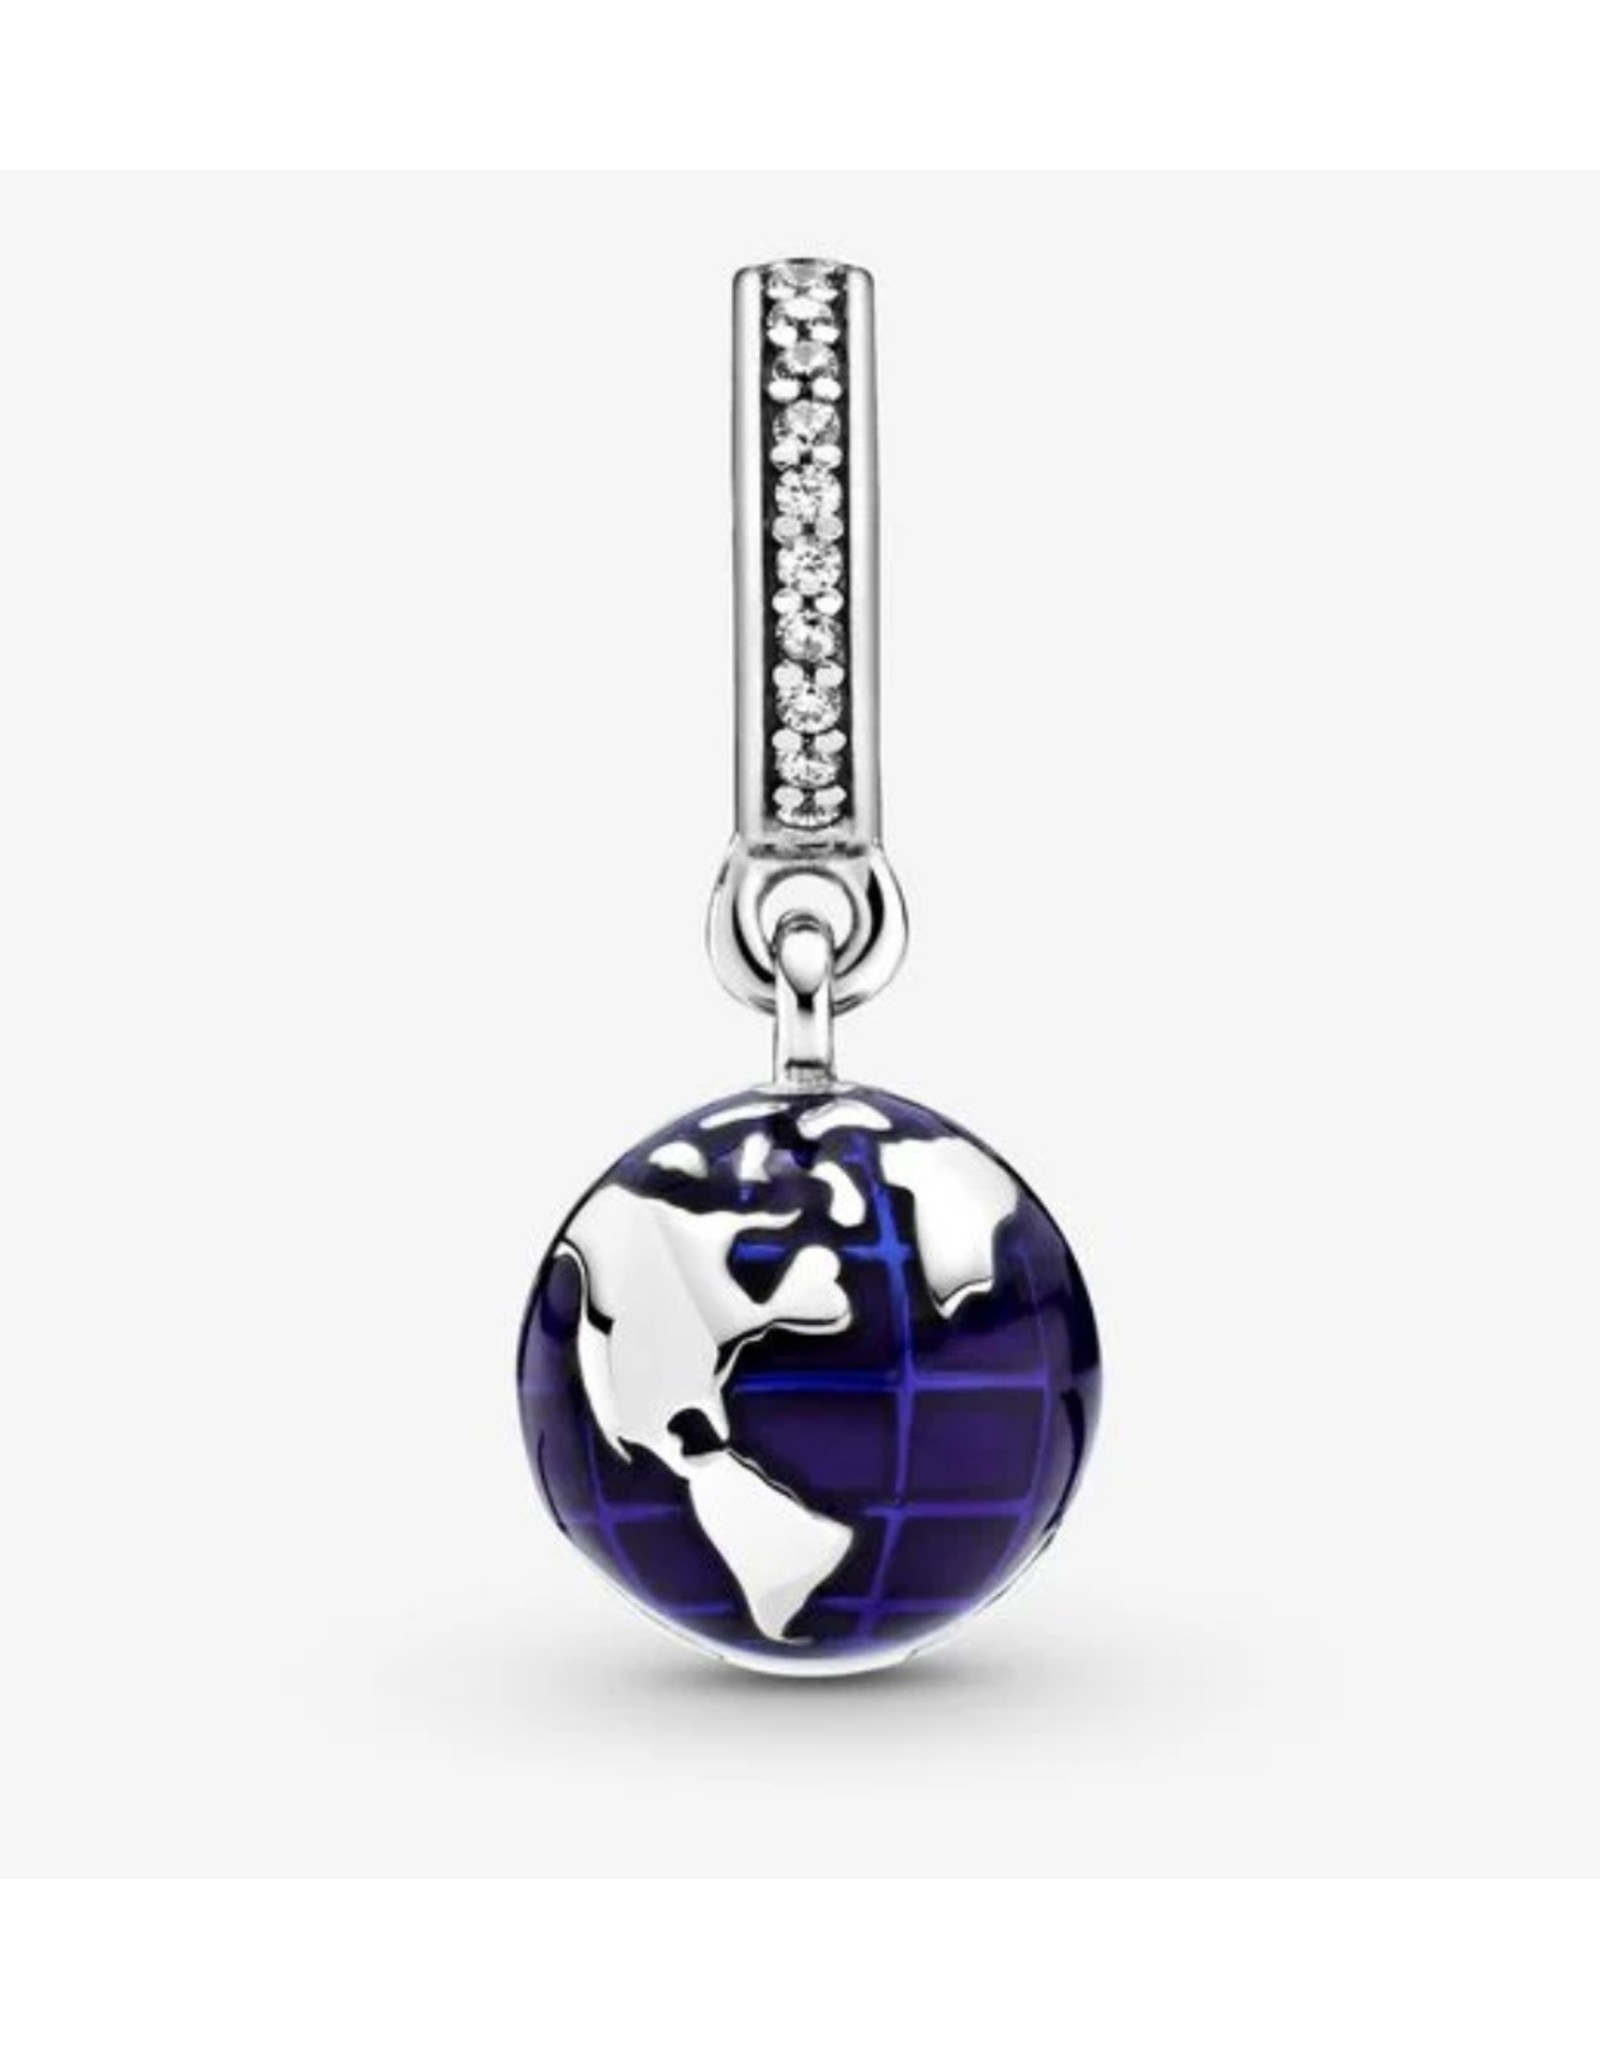 Pandora Pandora Charm,798774C01, Openable Globe Dangle, Blue Enamel